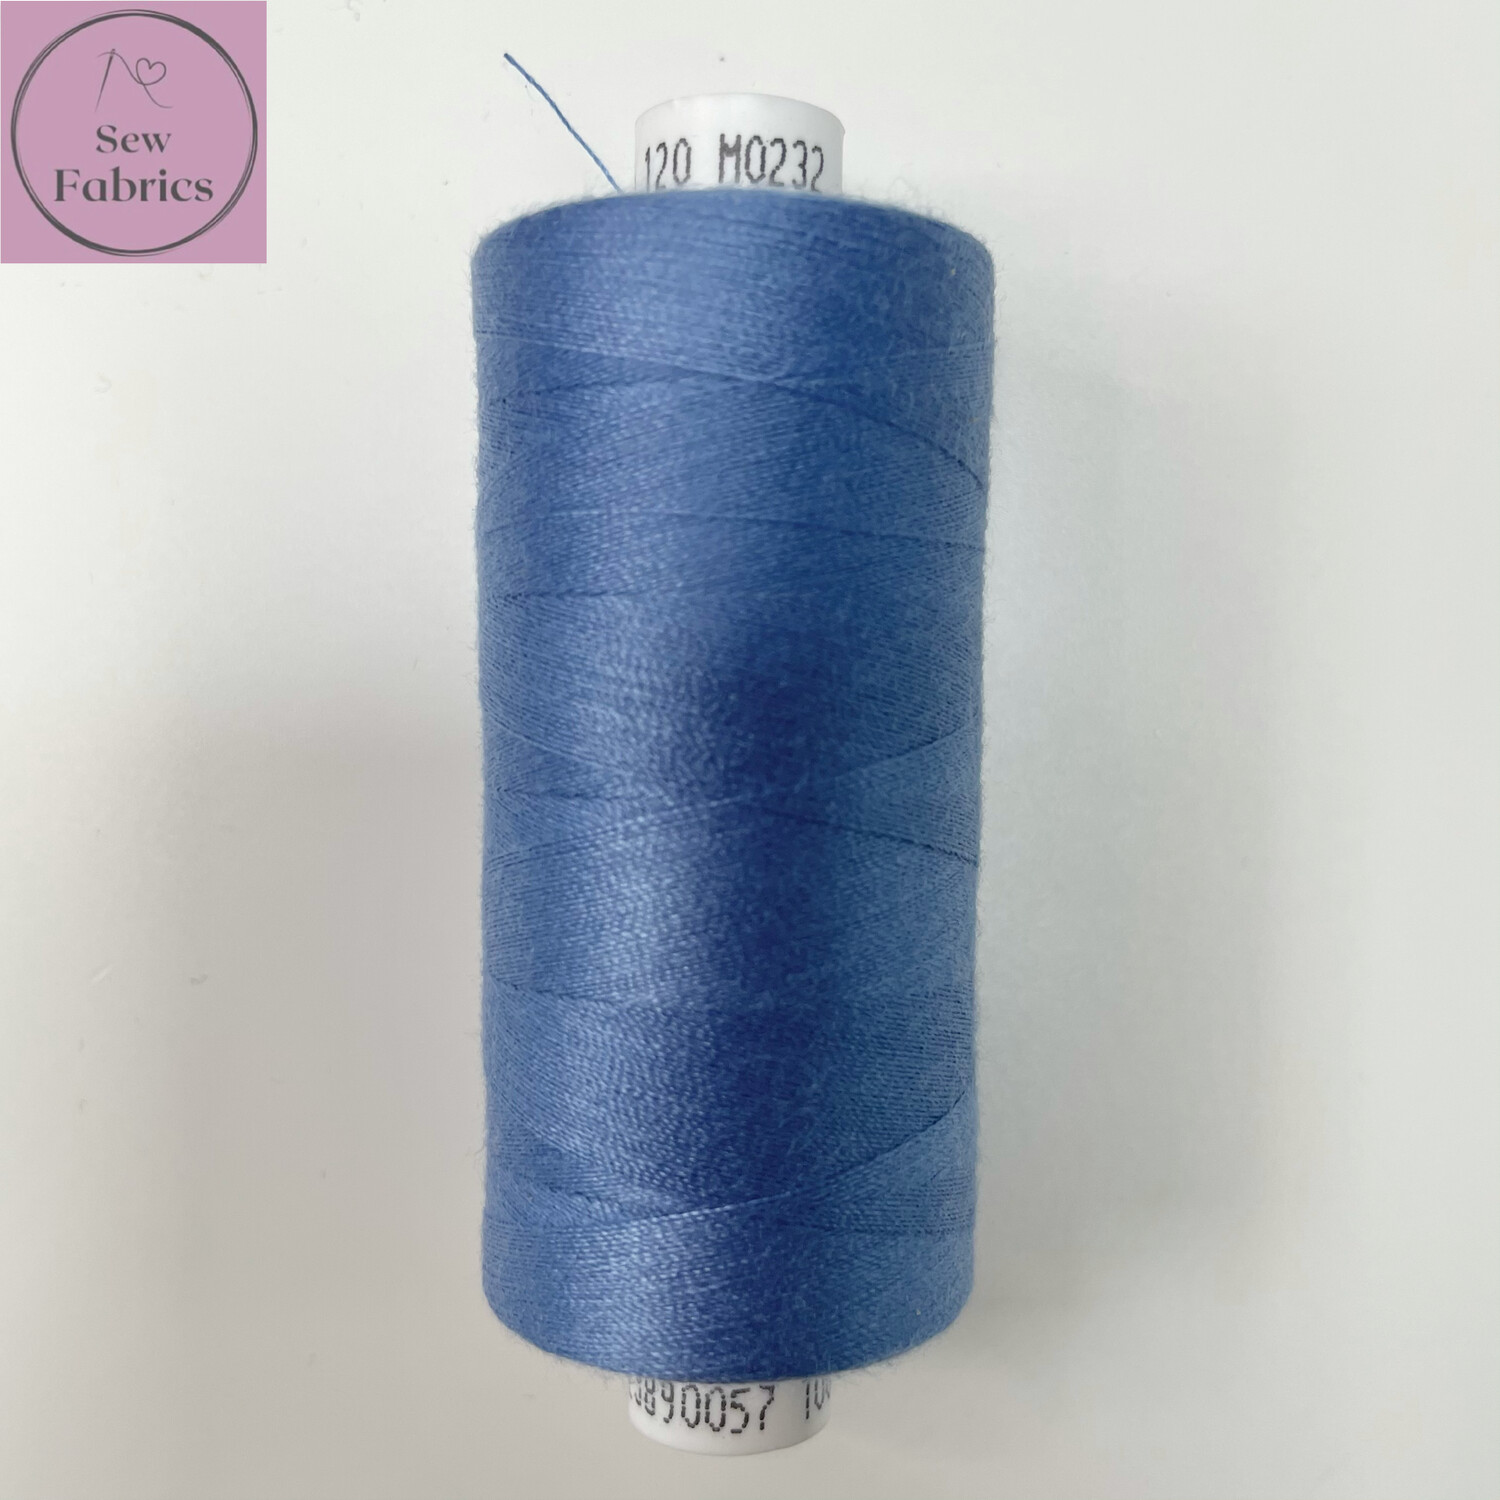 1 x 1000y Coats Moon Thread - Copen Blue M232